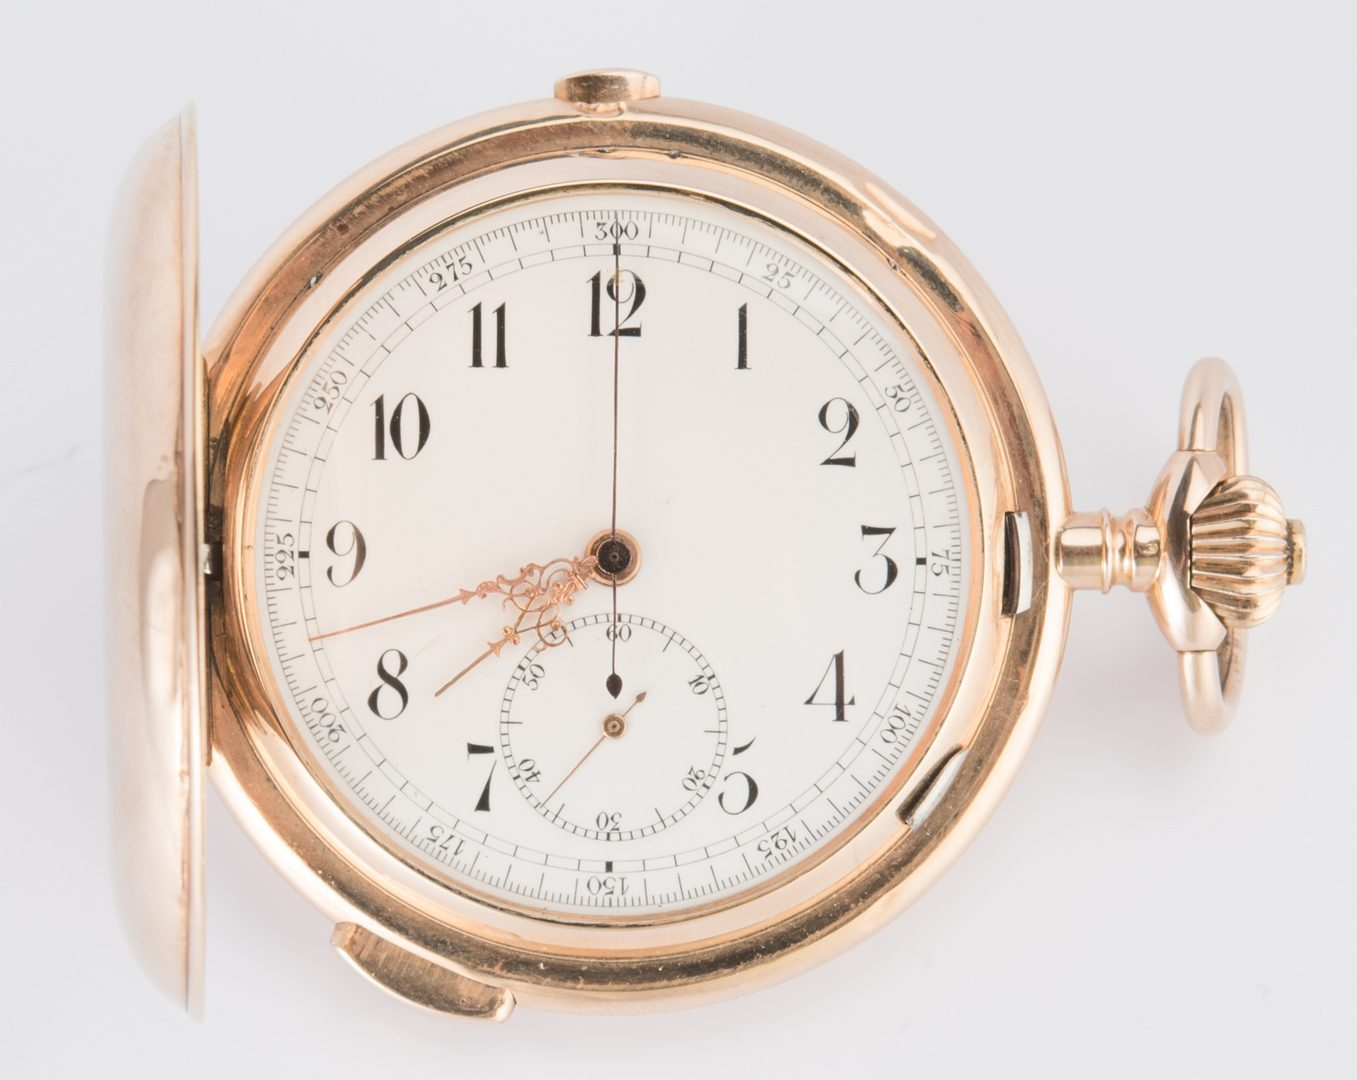 Lot 719: Swiss 14K Chronograph for Russian Mkt